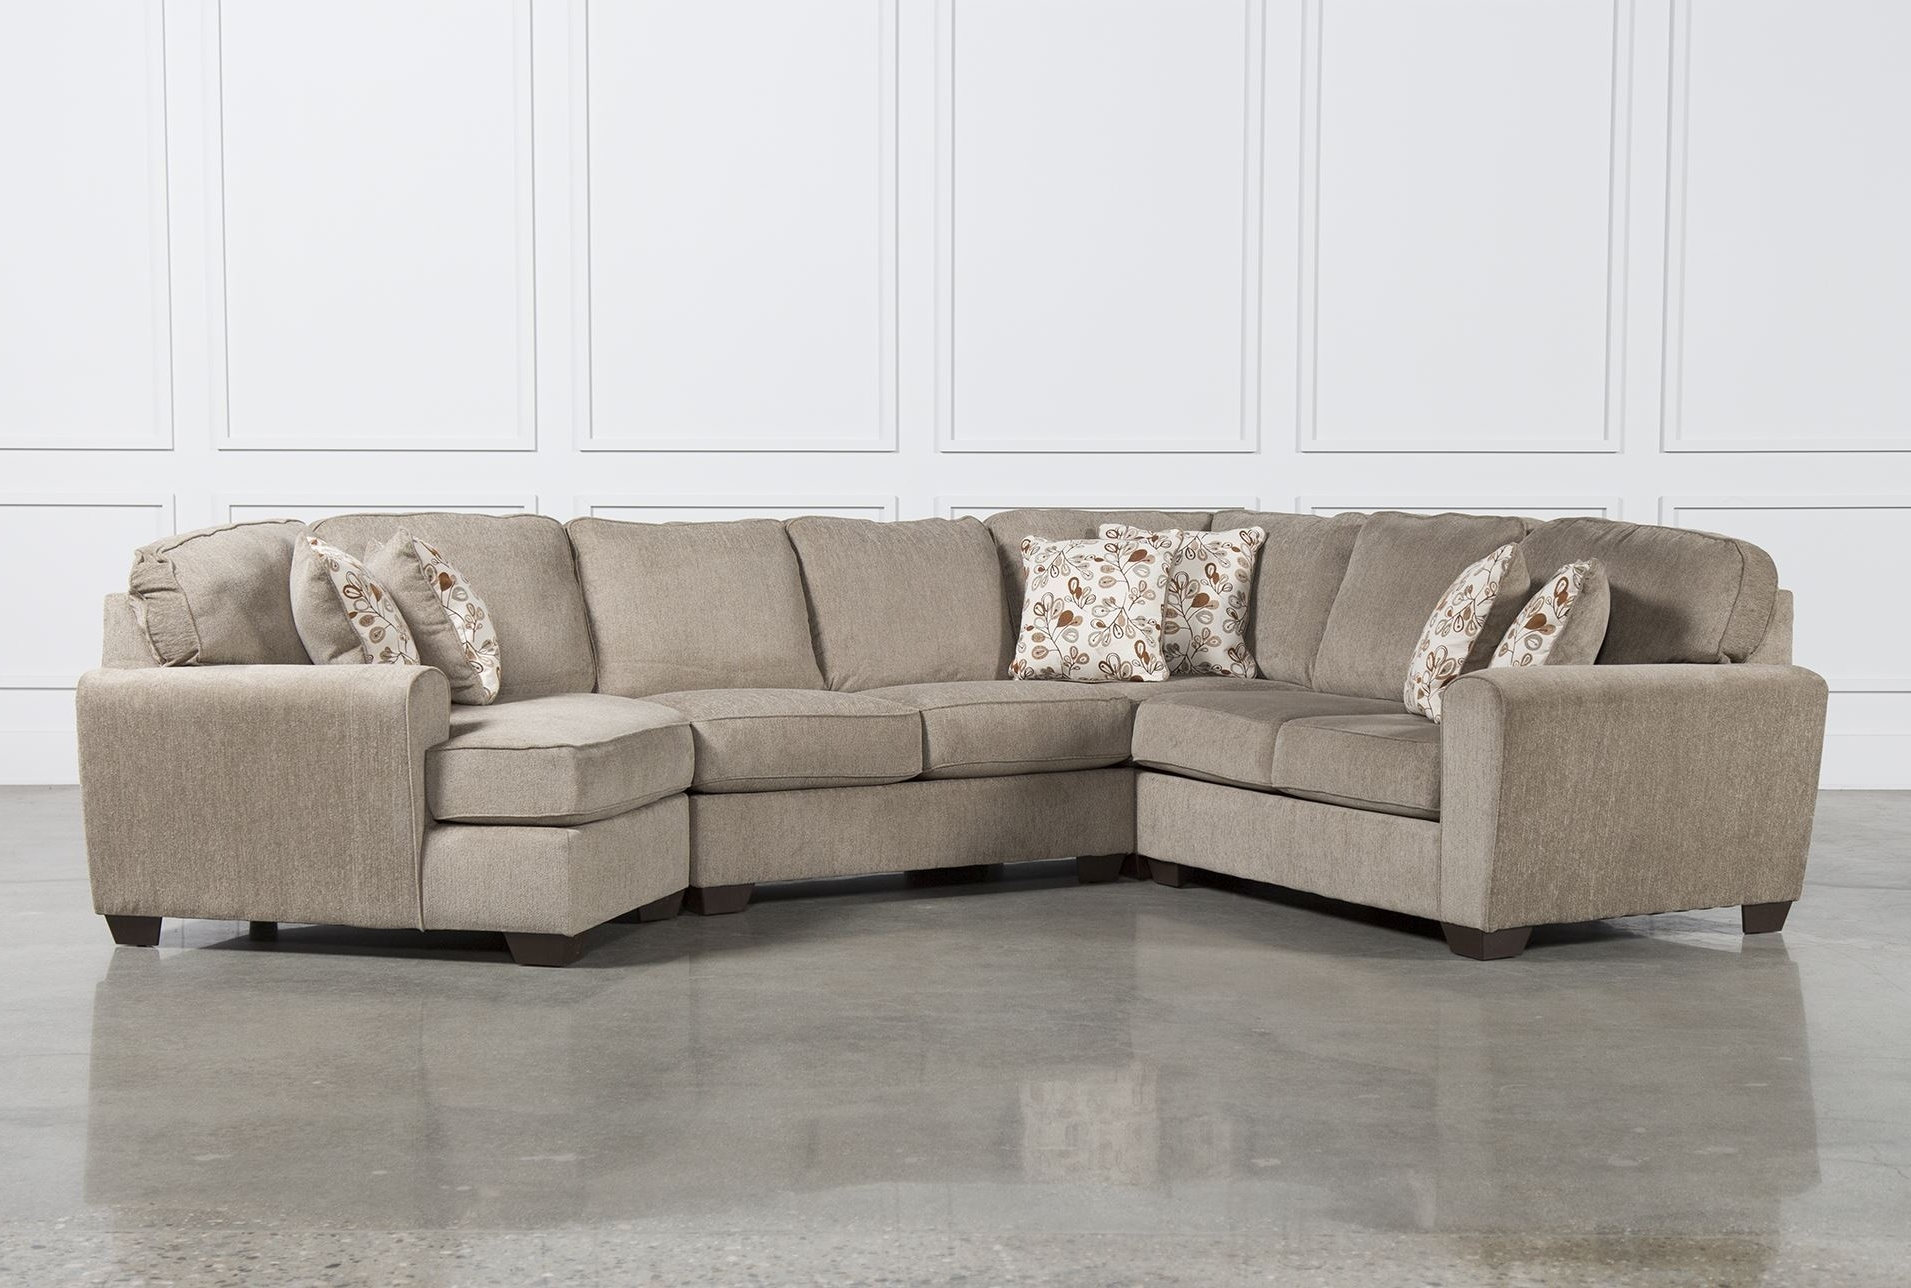 Sectional Sofas With Cuddler Inside 2017 Patola Park 4 Piece Sectional W Raf Cuddler Living Spaces In Sofa (View 10 of 15)